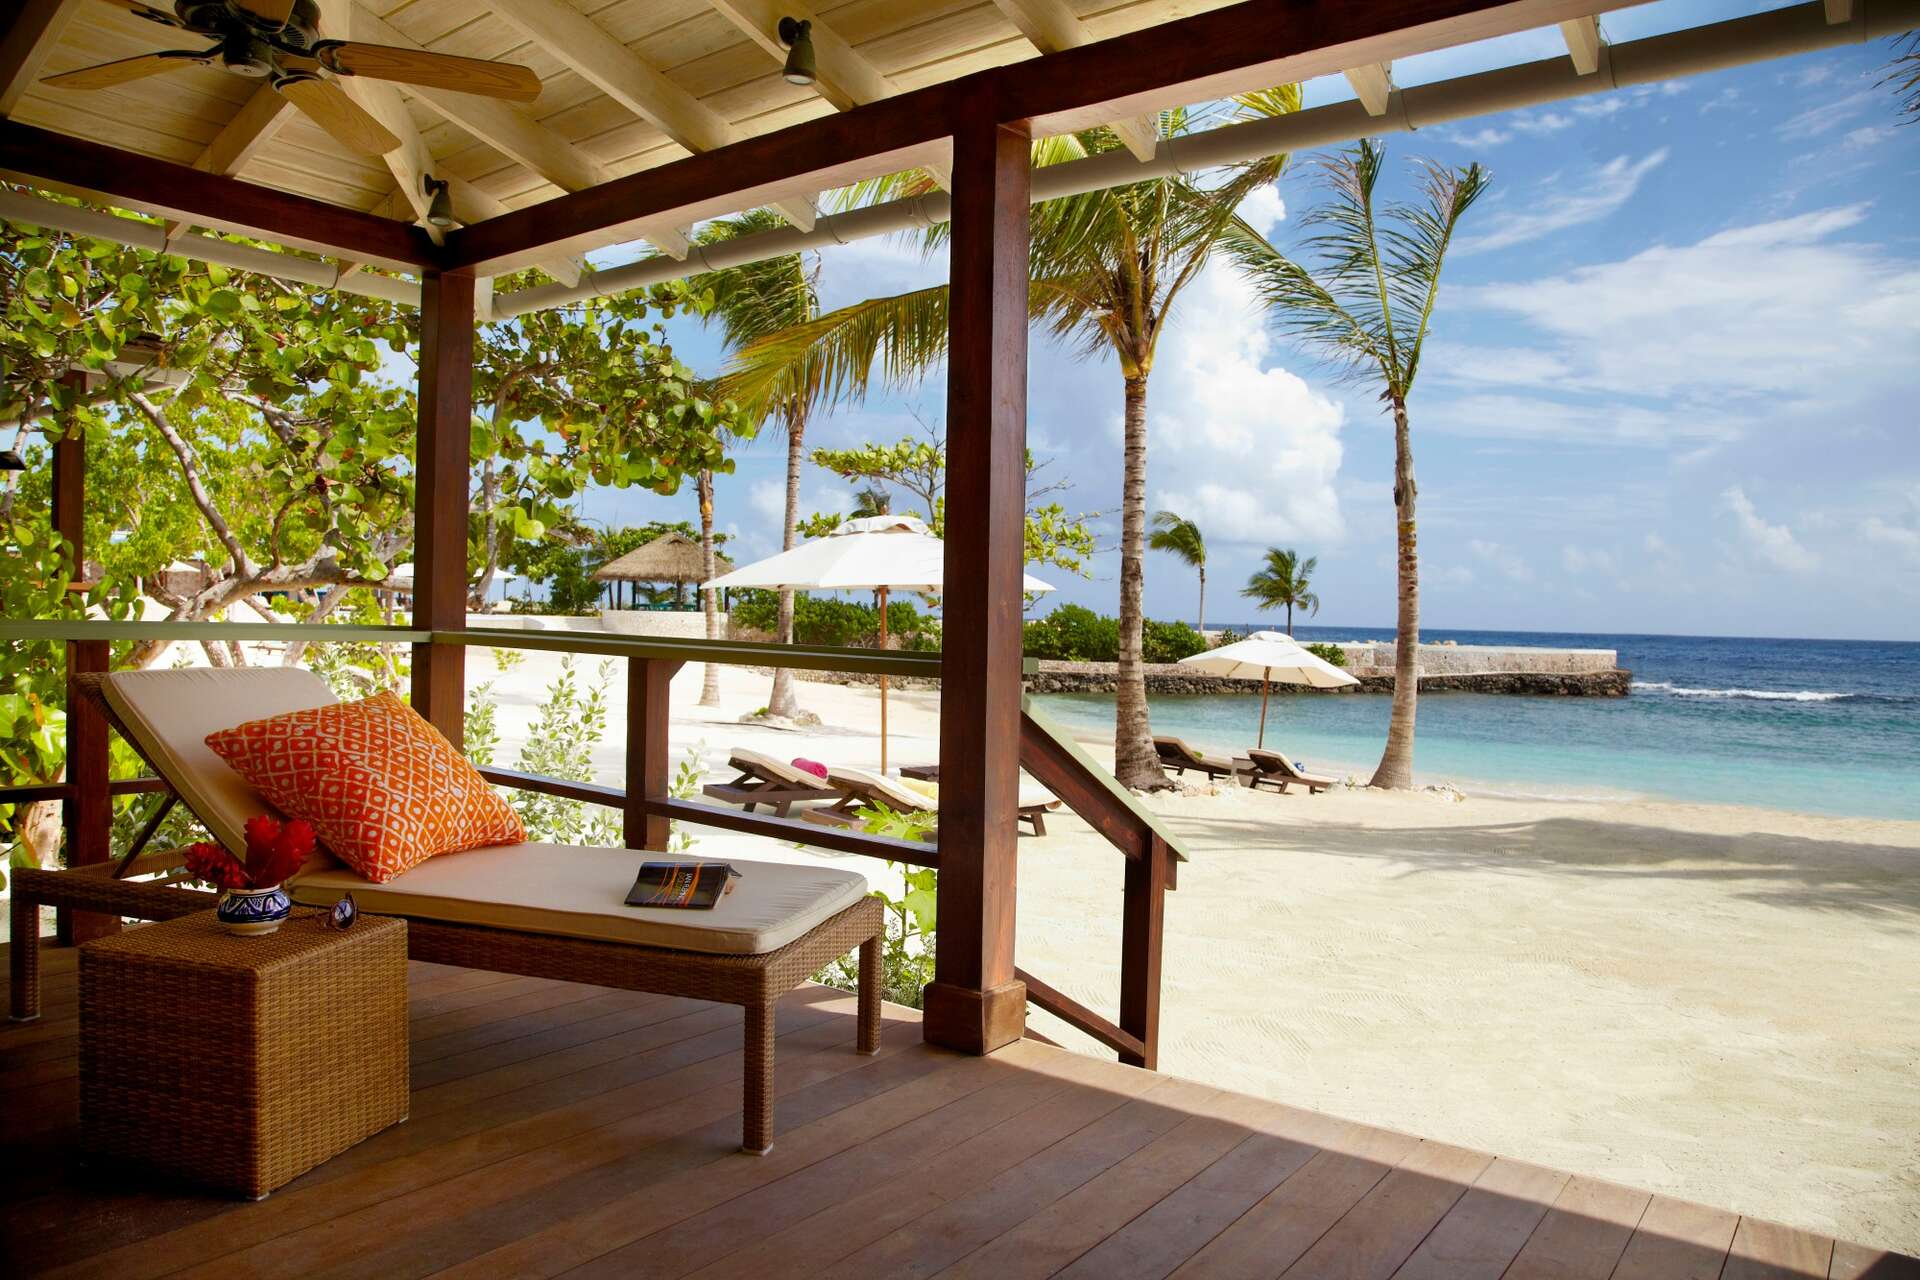 Luxury villa rentals caribbean - Jamaica - Oracabessa - No location 4 - GoldenEye Beach & Lagoon Villas - Image 1/9